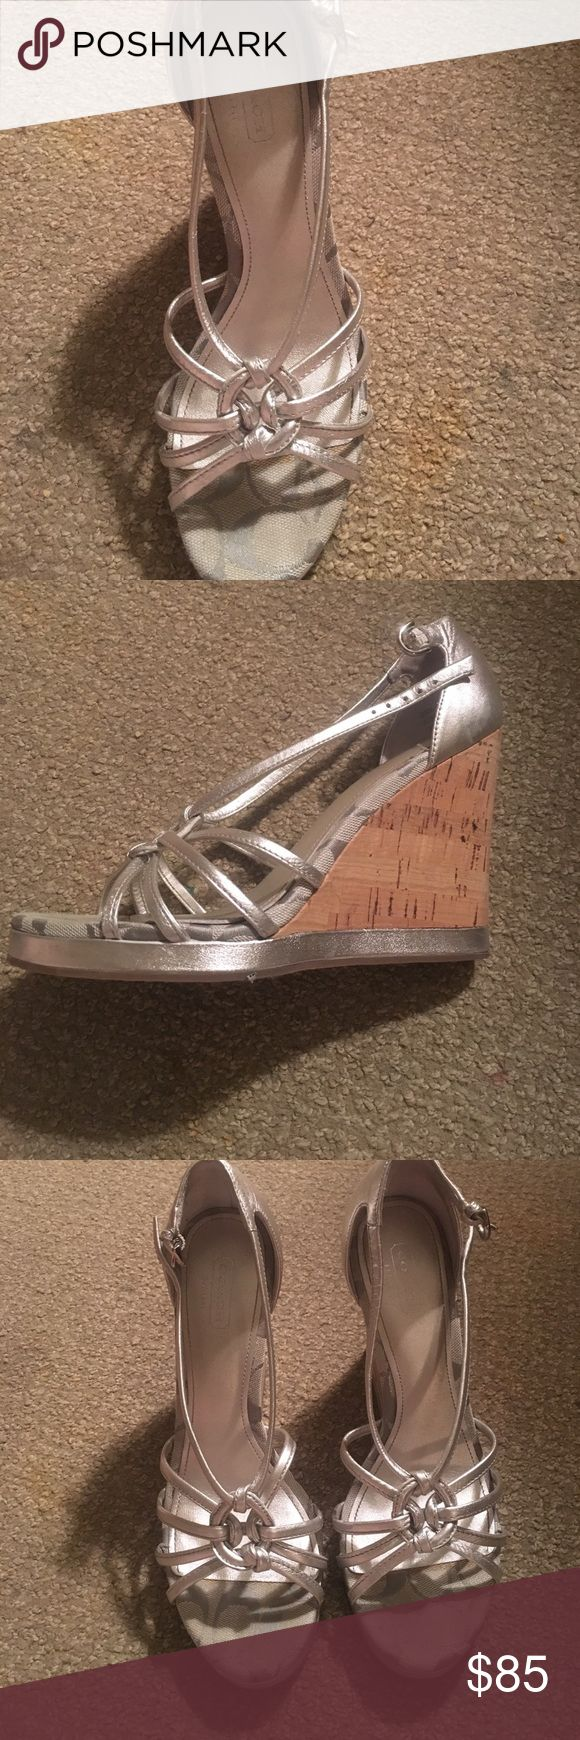 Size 8 Silver Coach Shoes Silver Wedge Coach strapped shoes- like new(worn once) Coach Shoes Wedges